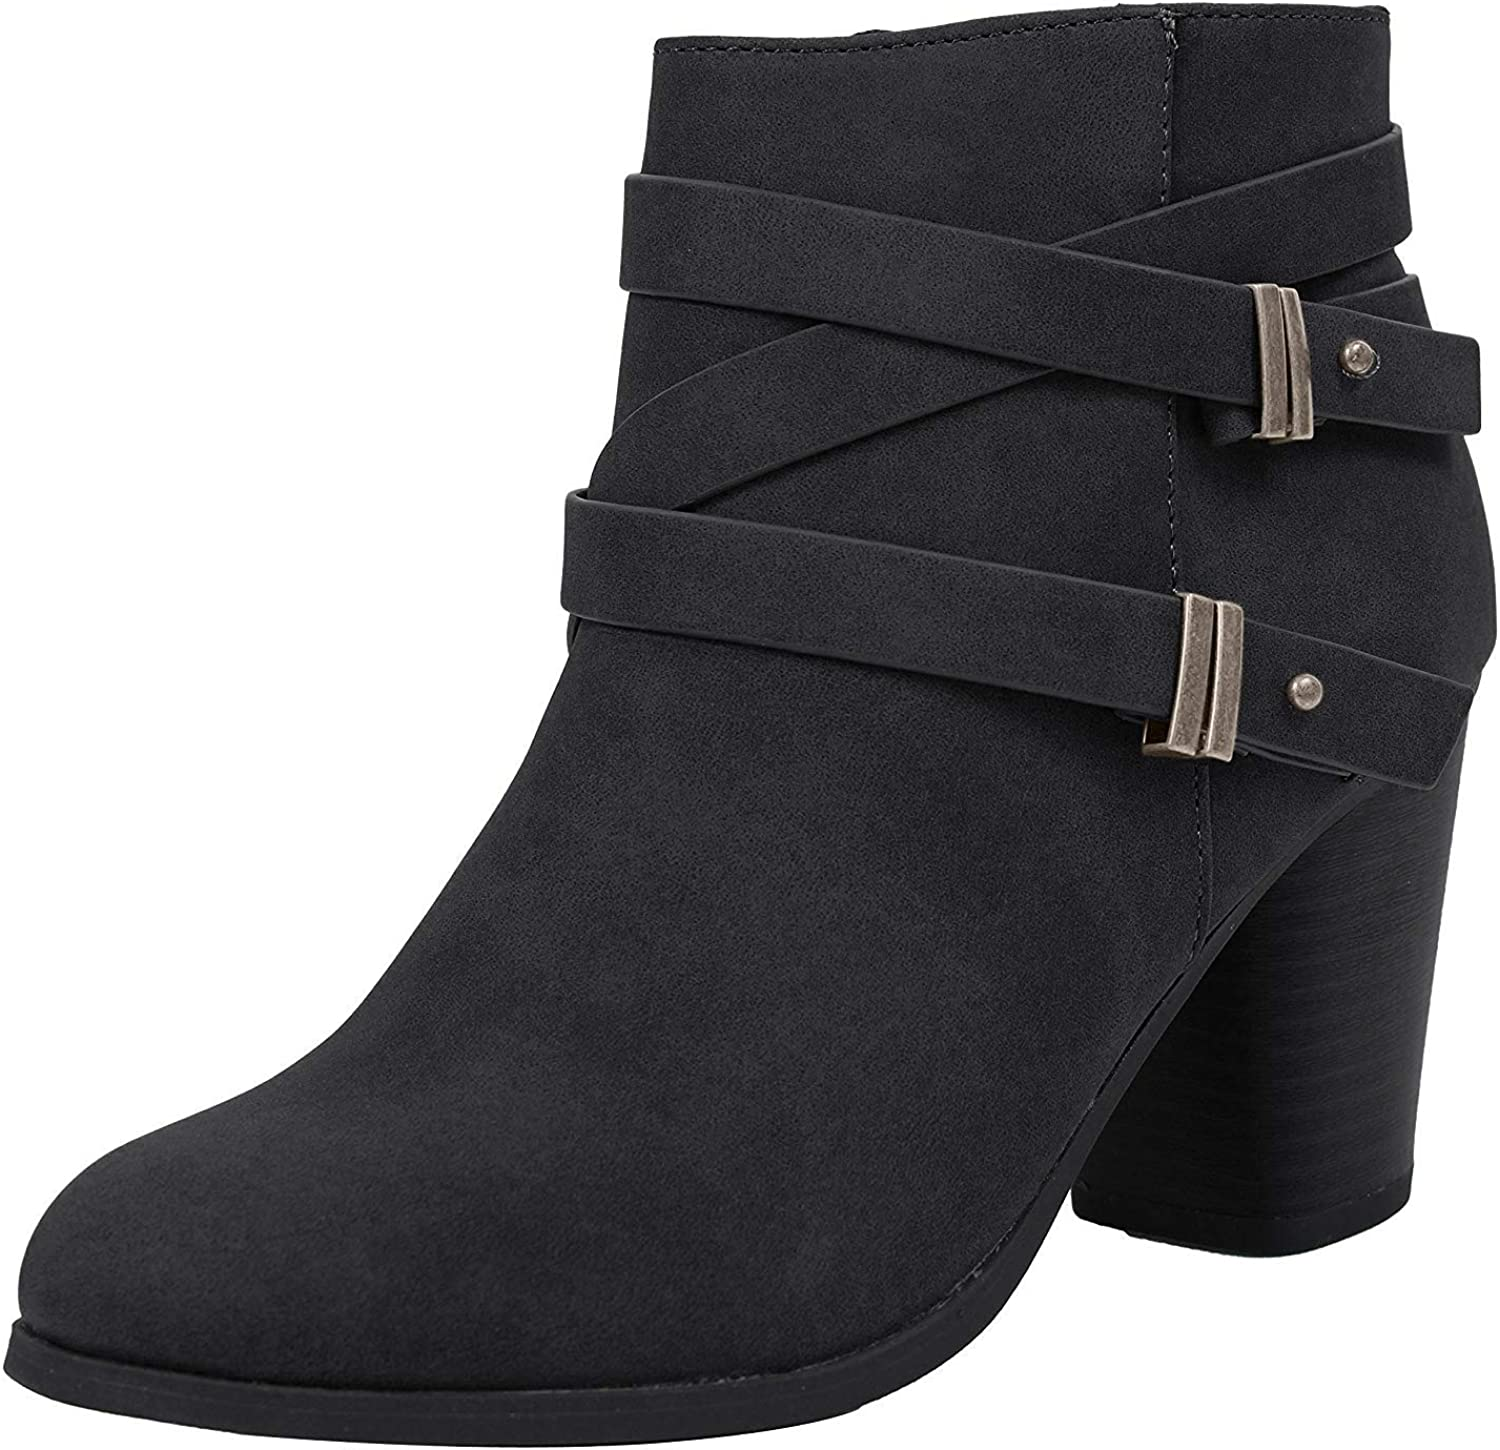 Soda Women's Pointy Toe Ankle Bootie Shoes